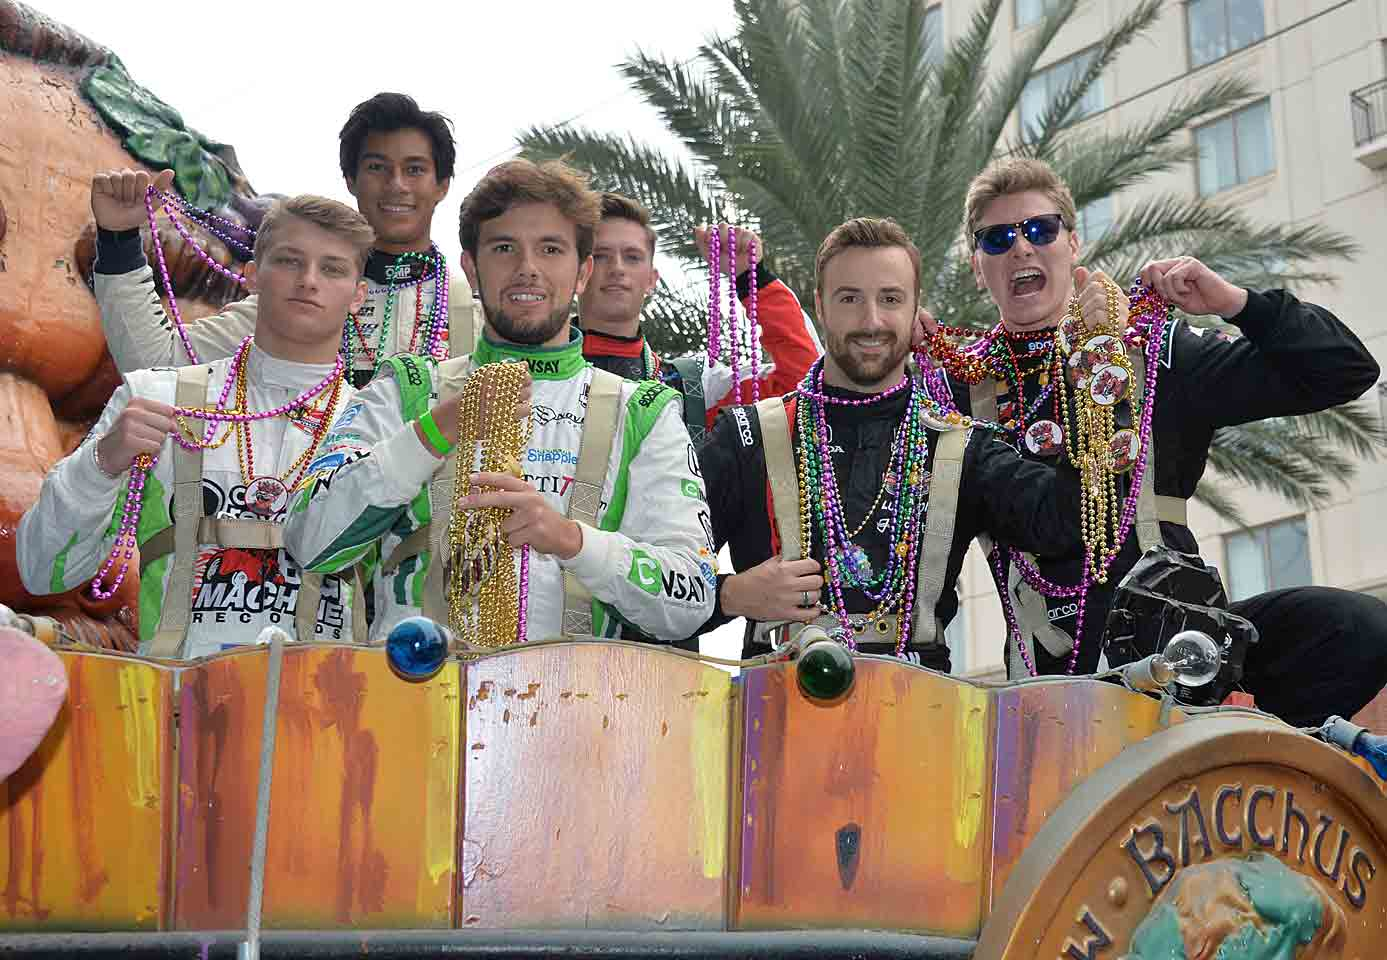 From left to right: Sage Karam, Neil Alberico, Carlos Munoz, Aaron Telitz, James Hinchcliffe and Josef Newgarden locked, loaded and ready to throw.